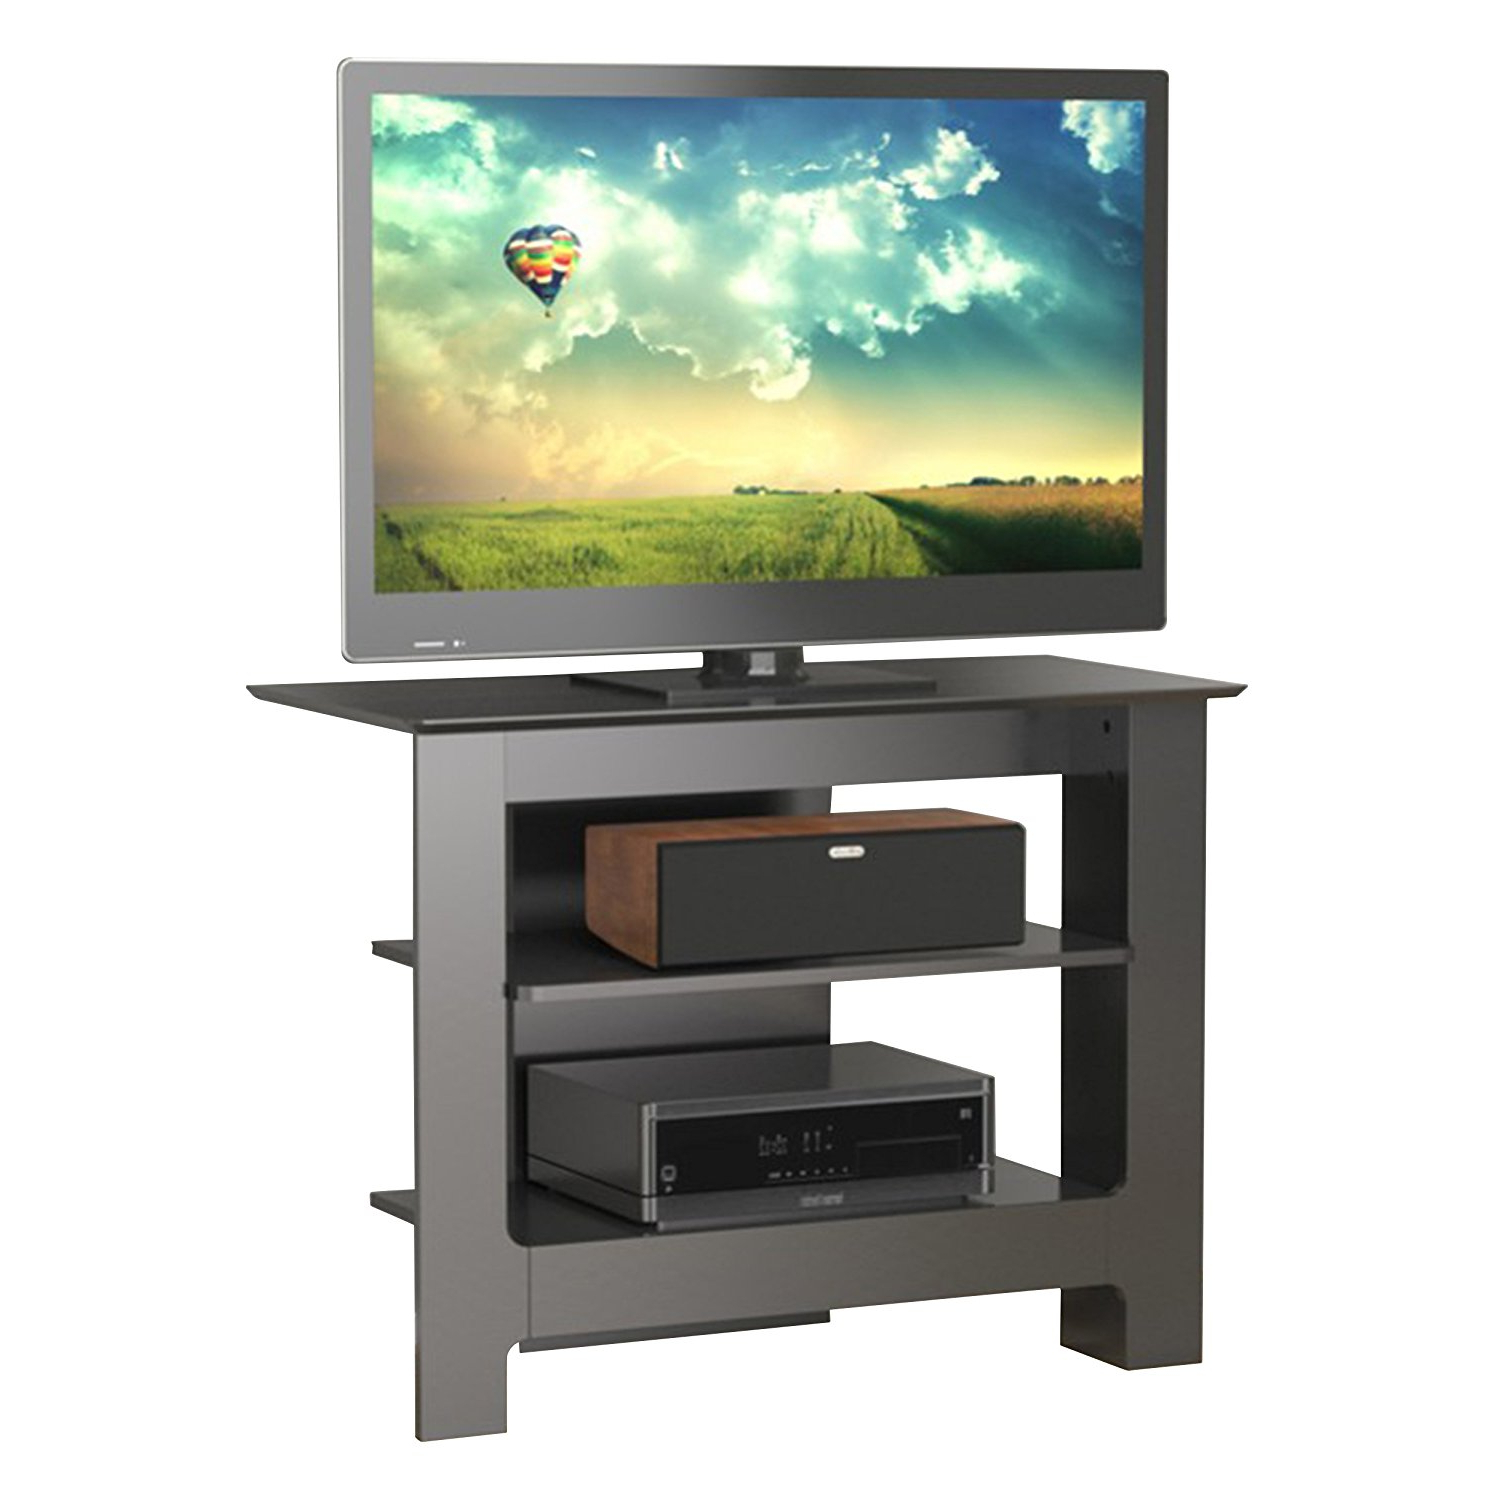 Favorite Cheap 40 Inch Corner Tv Stand, Find 40 Inch Corner Tv Stand Deals On Throughout 40 Inch Corner Tv Stands (View 13 of 20)